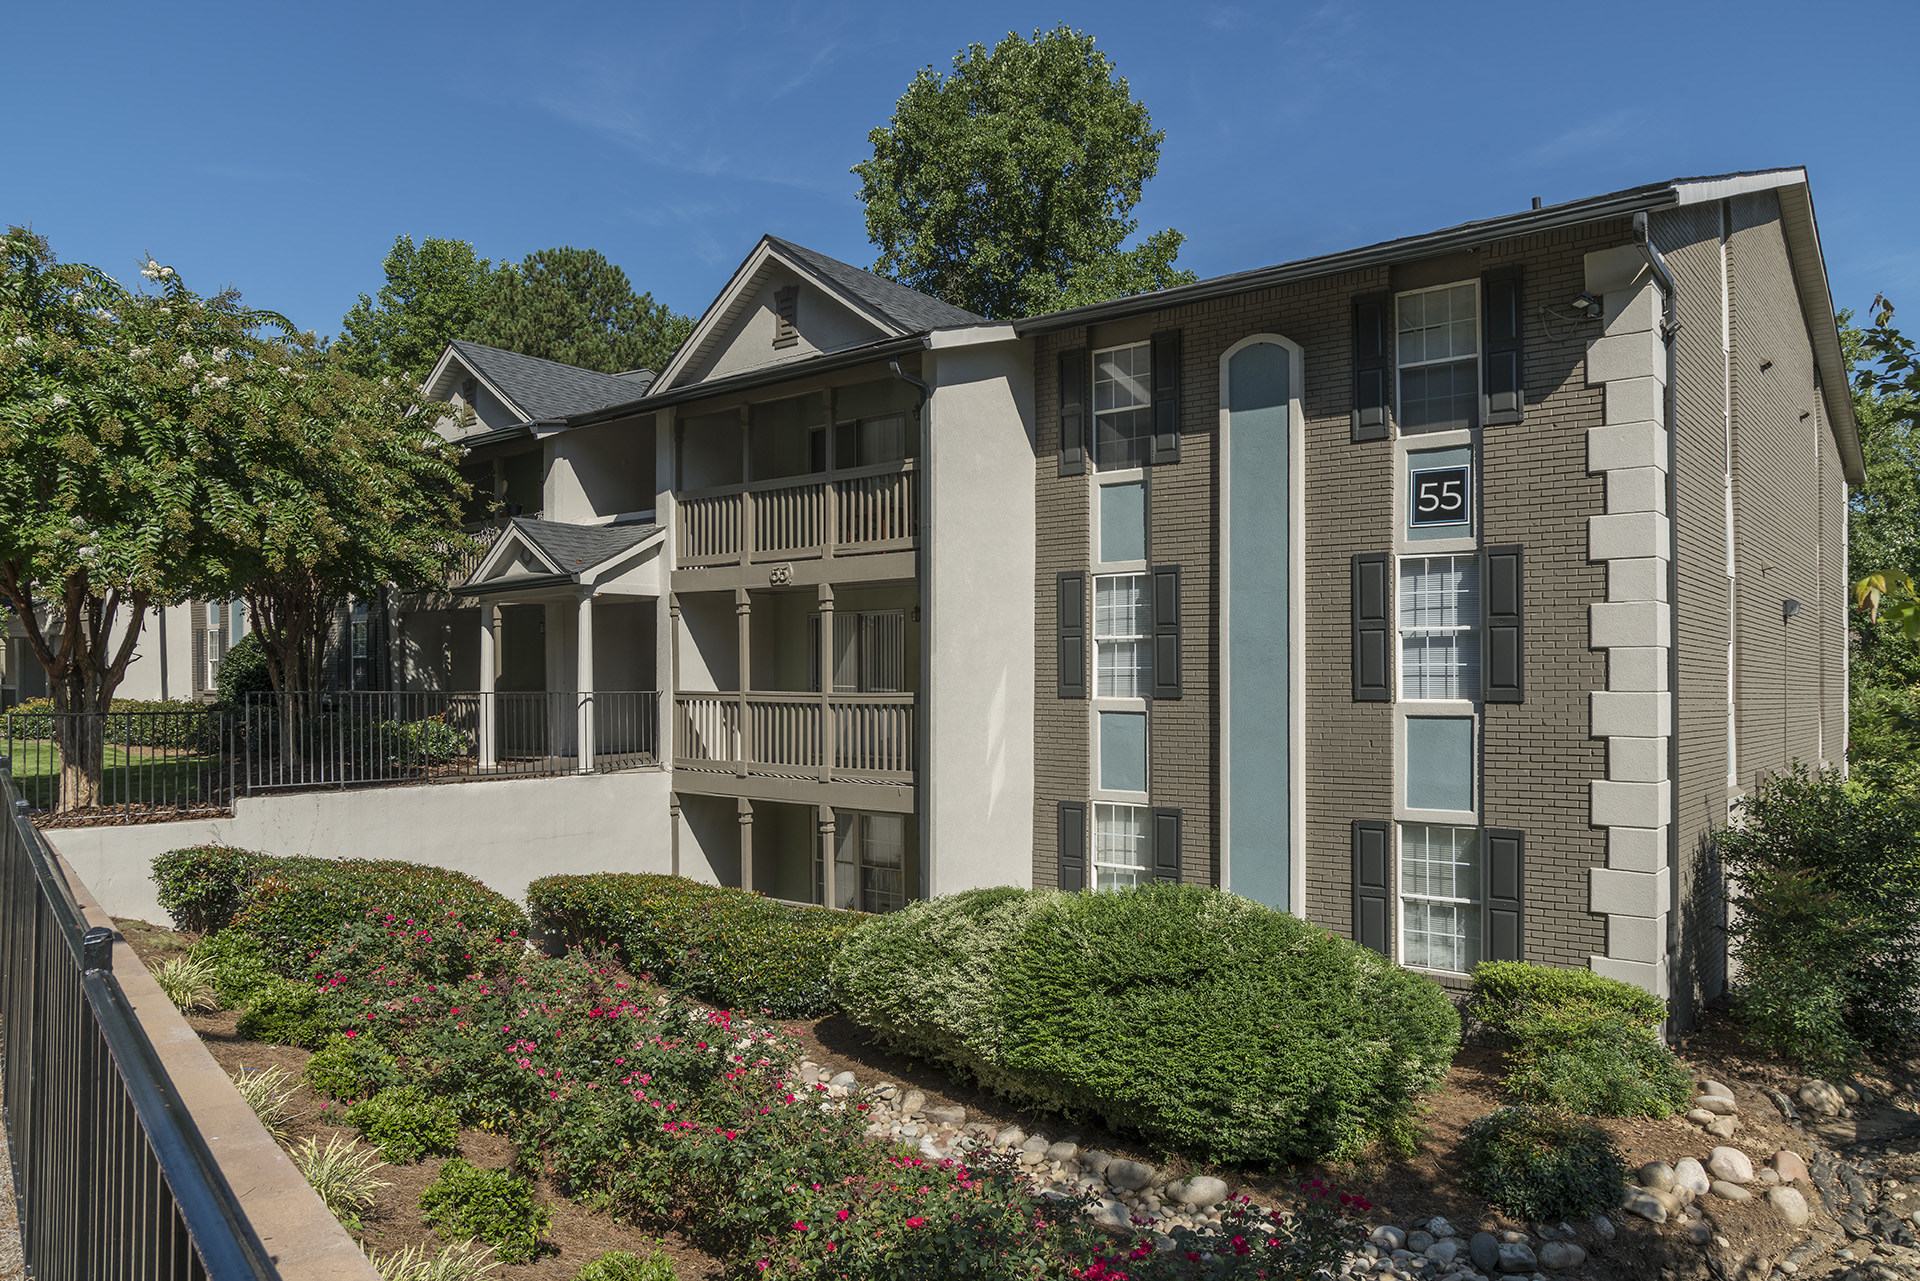 Venterra Realty Acquires 505-Unit The Harrison Garden-Style Apartment Community in The Atlanta Suburb of Sandy Springs, Georgia